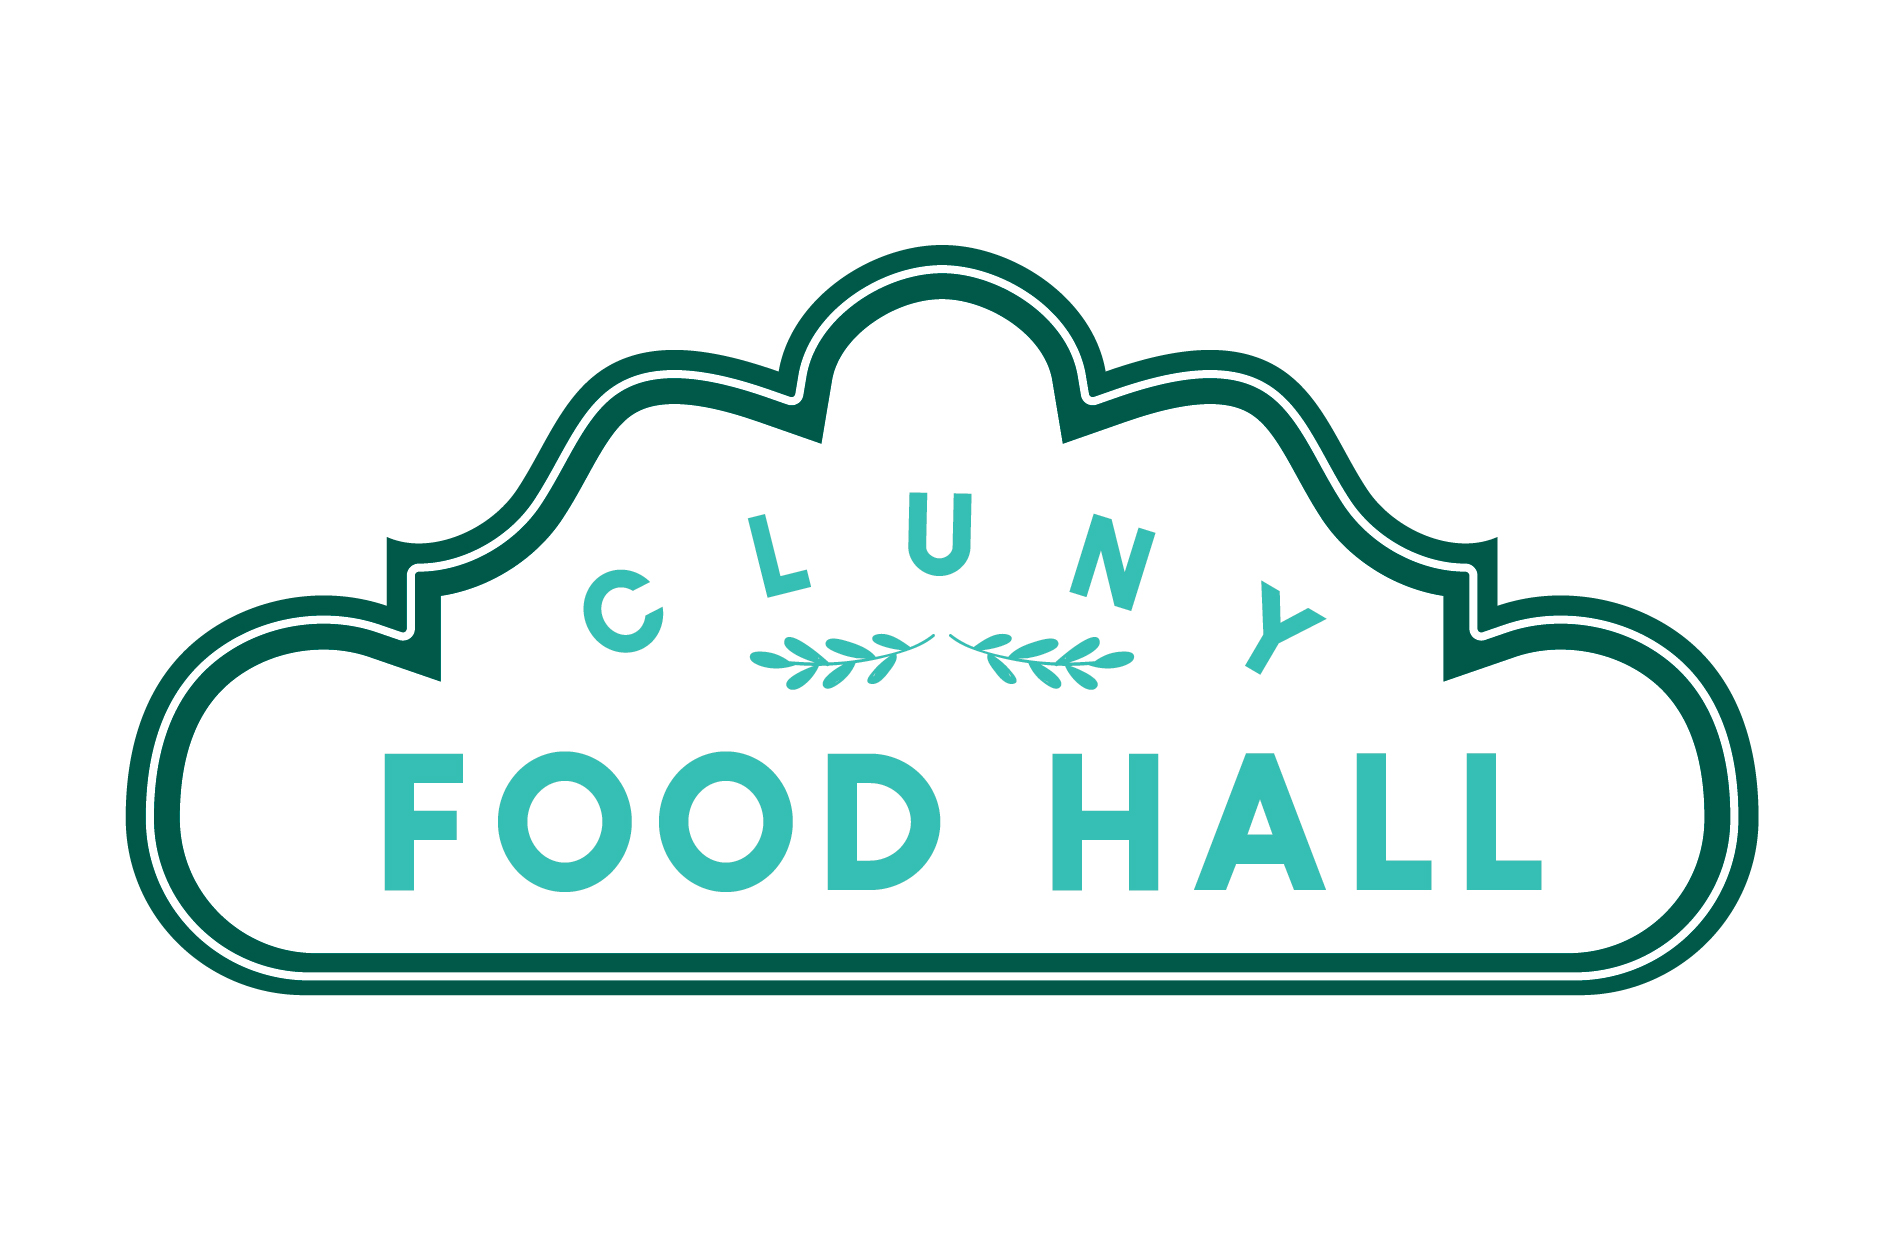 Cluny Food Hall